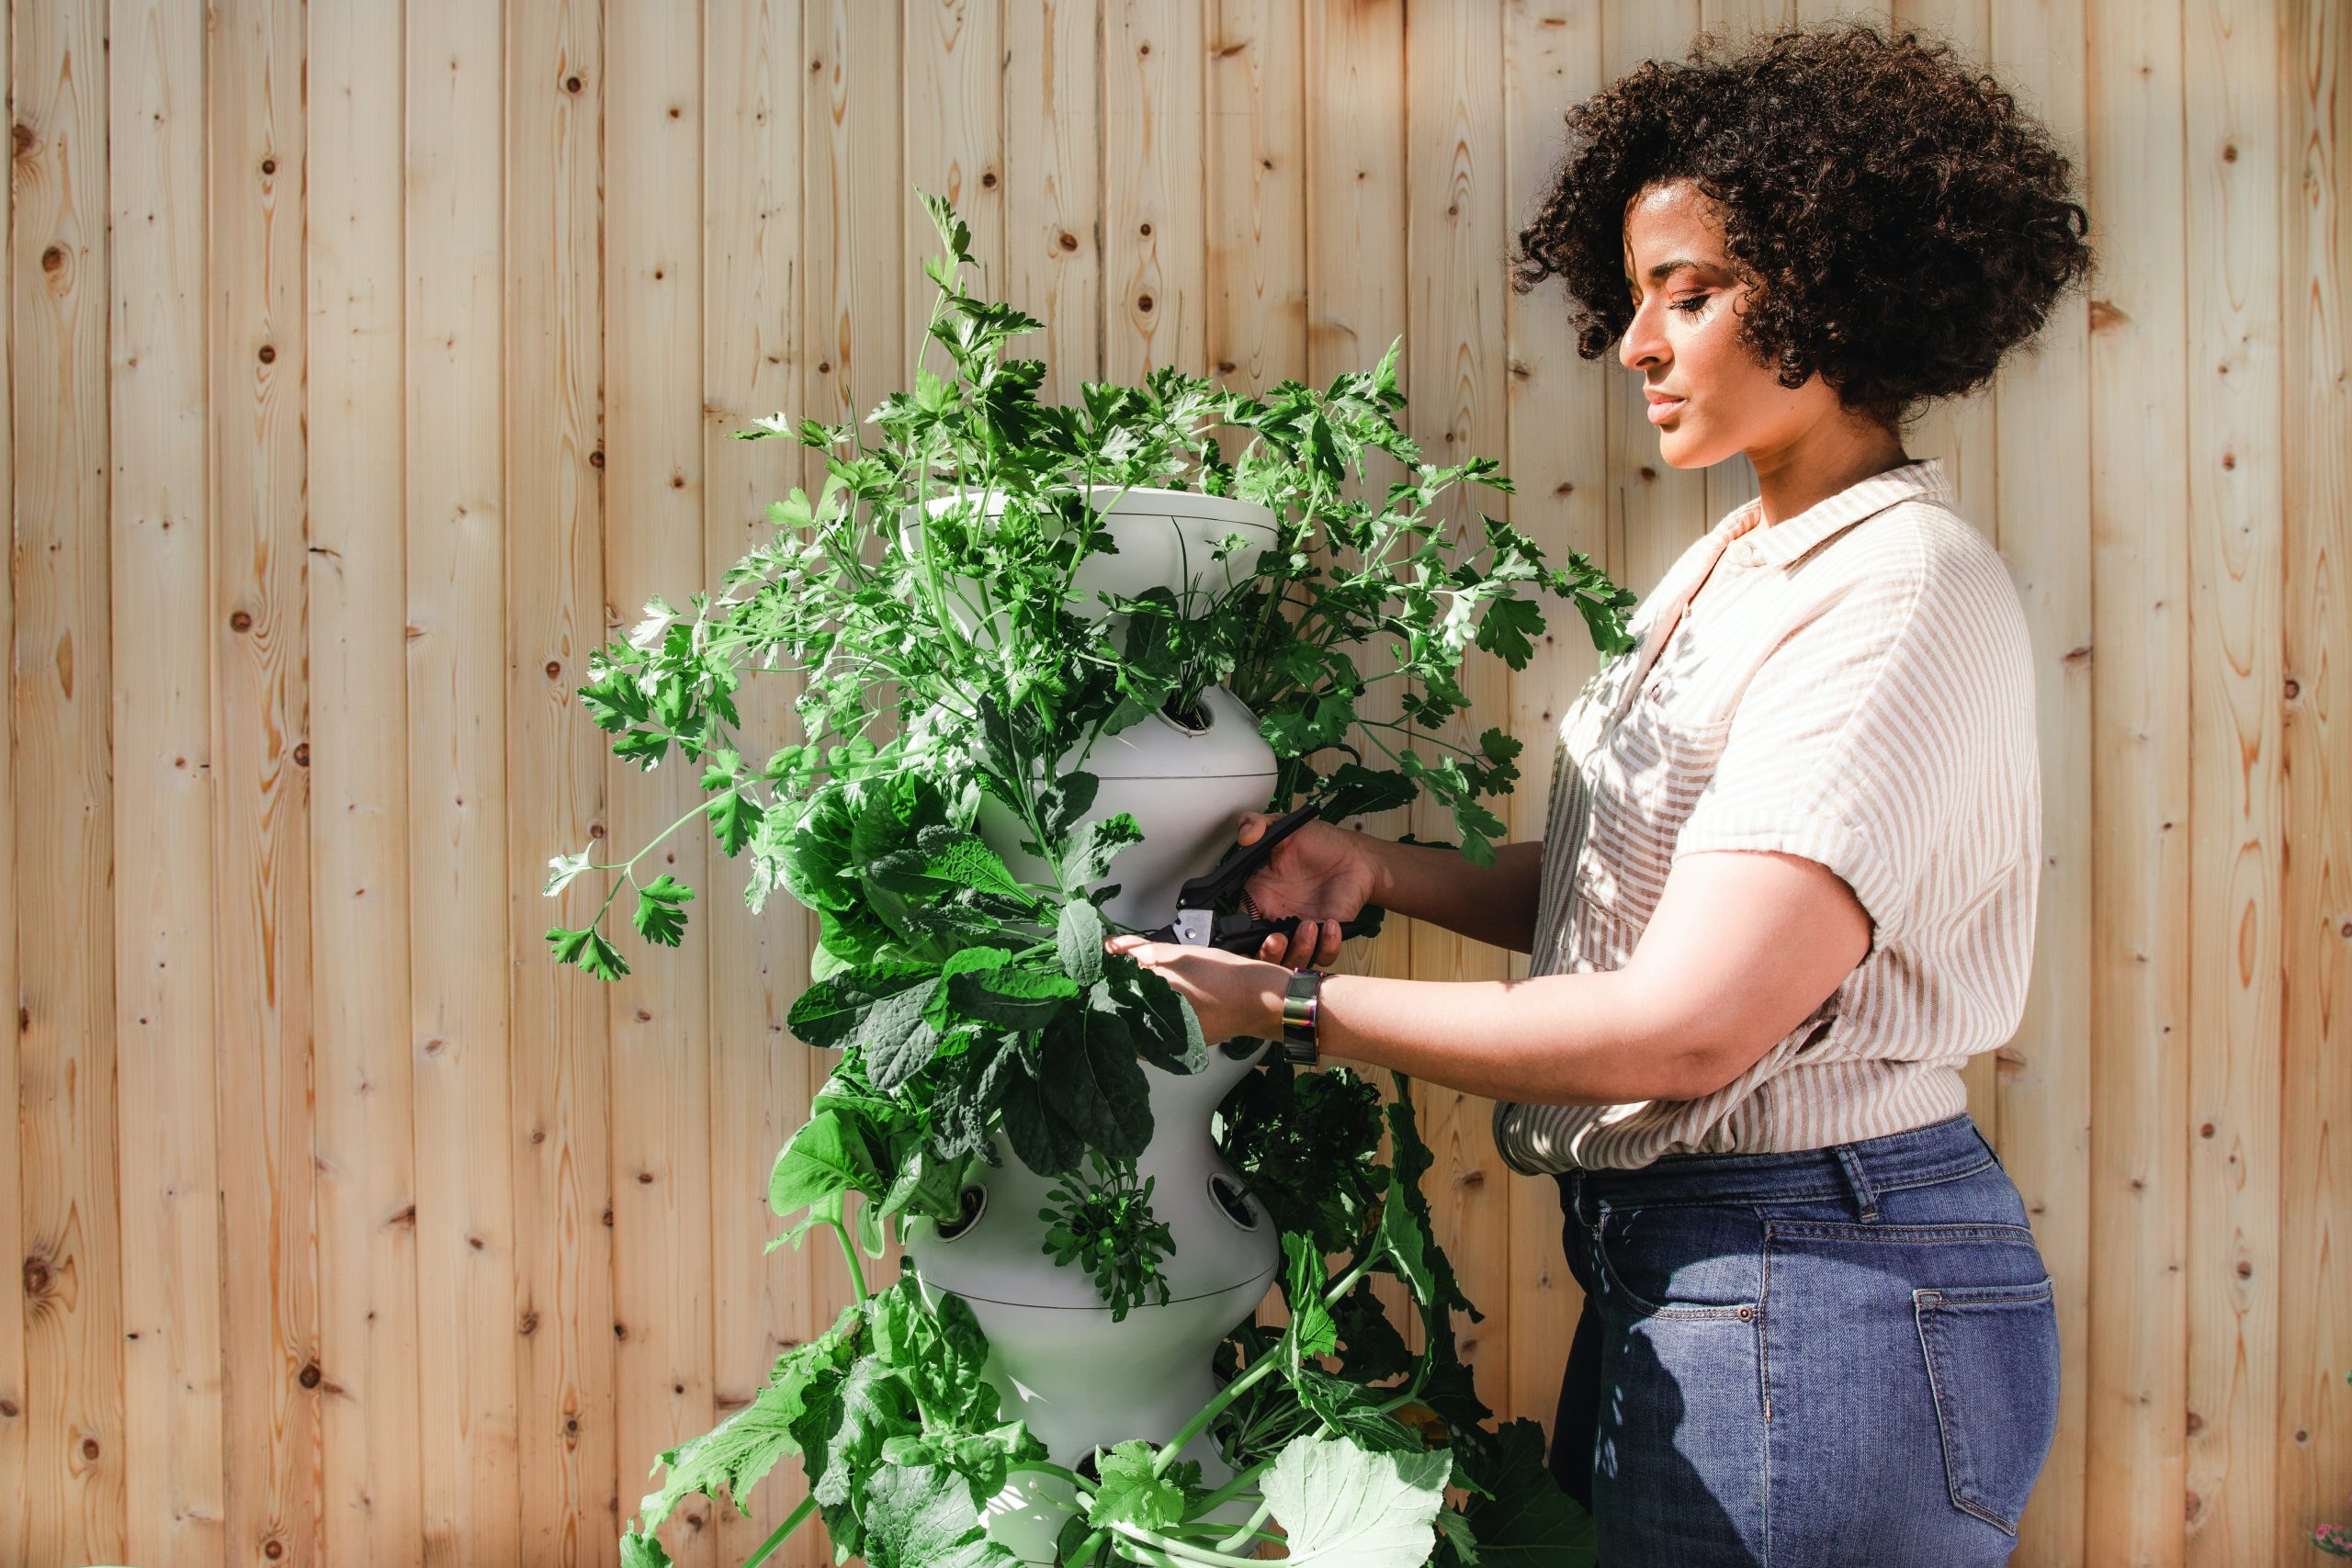 Pruning your plants can be therapeutic.